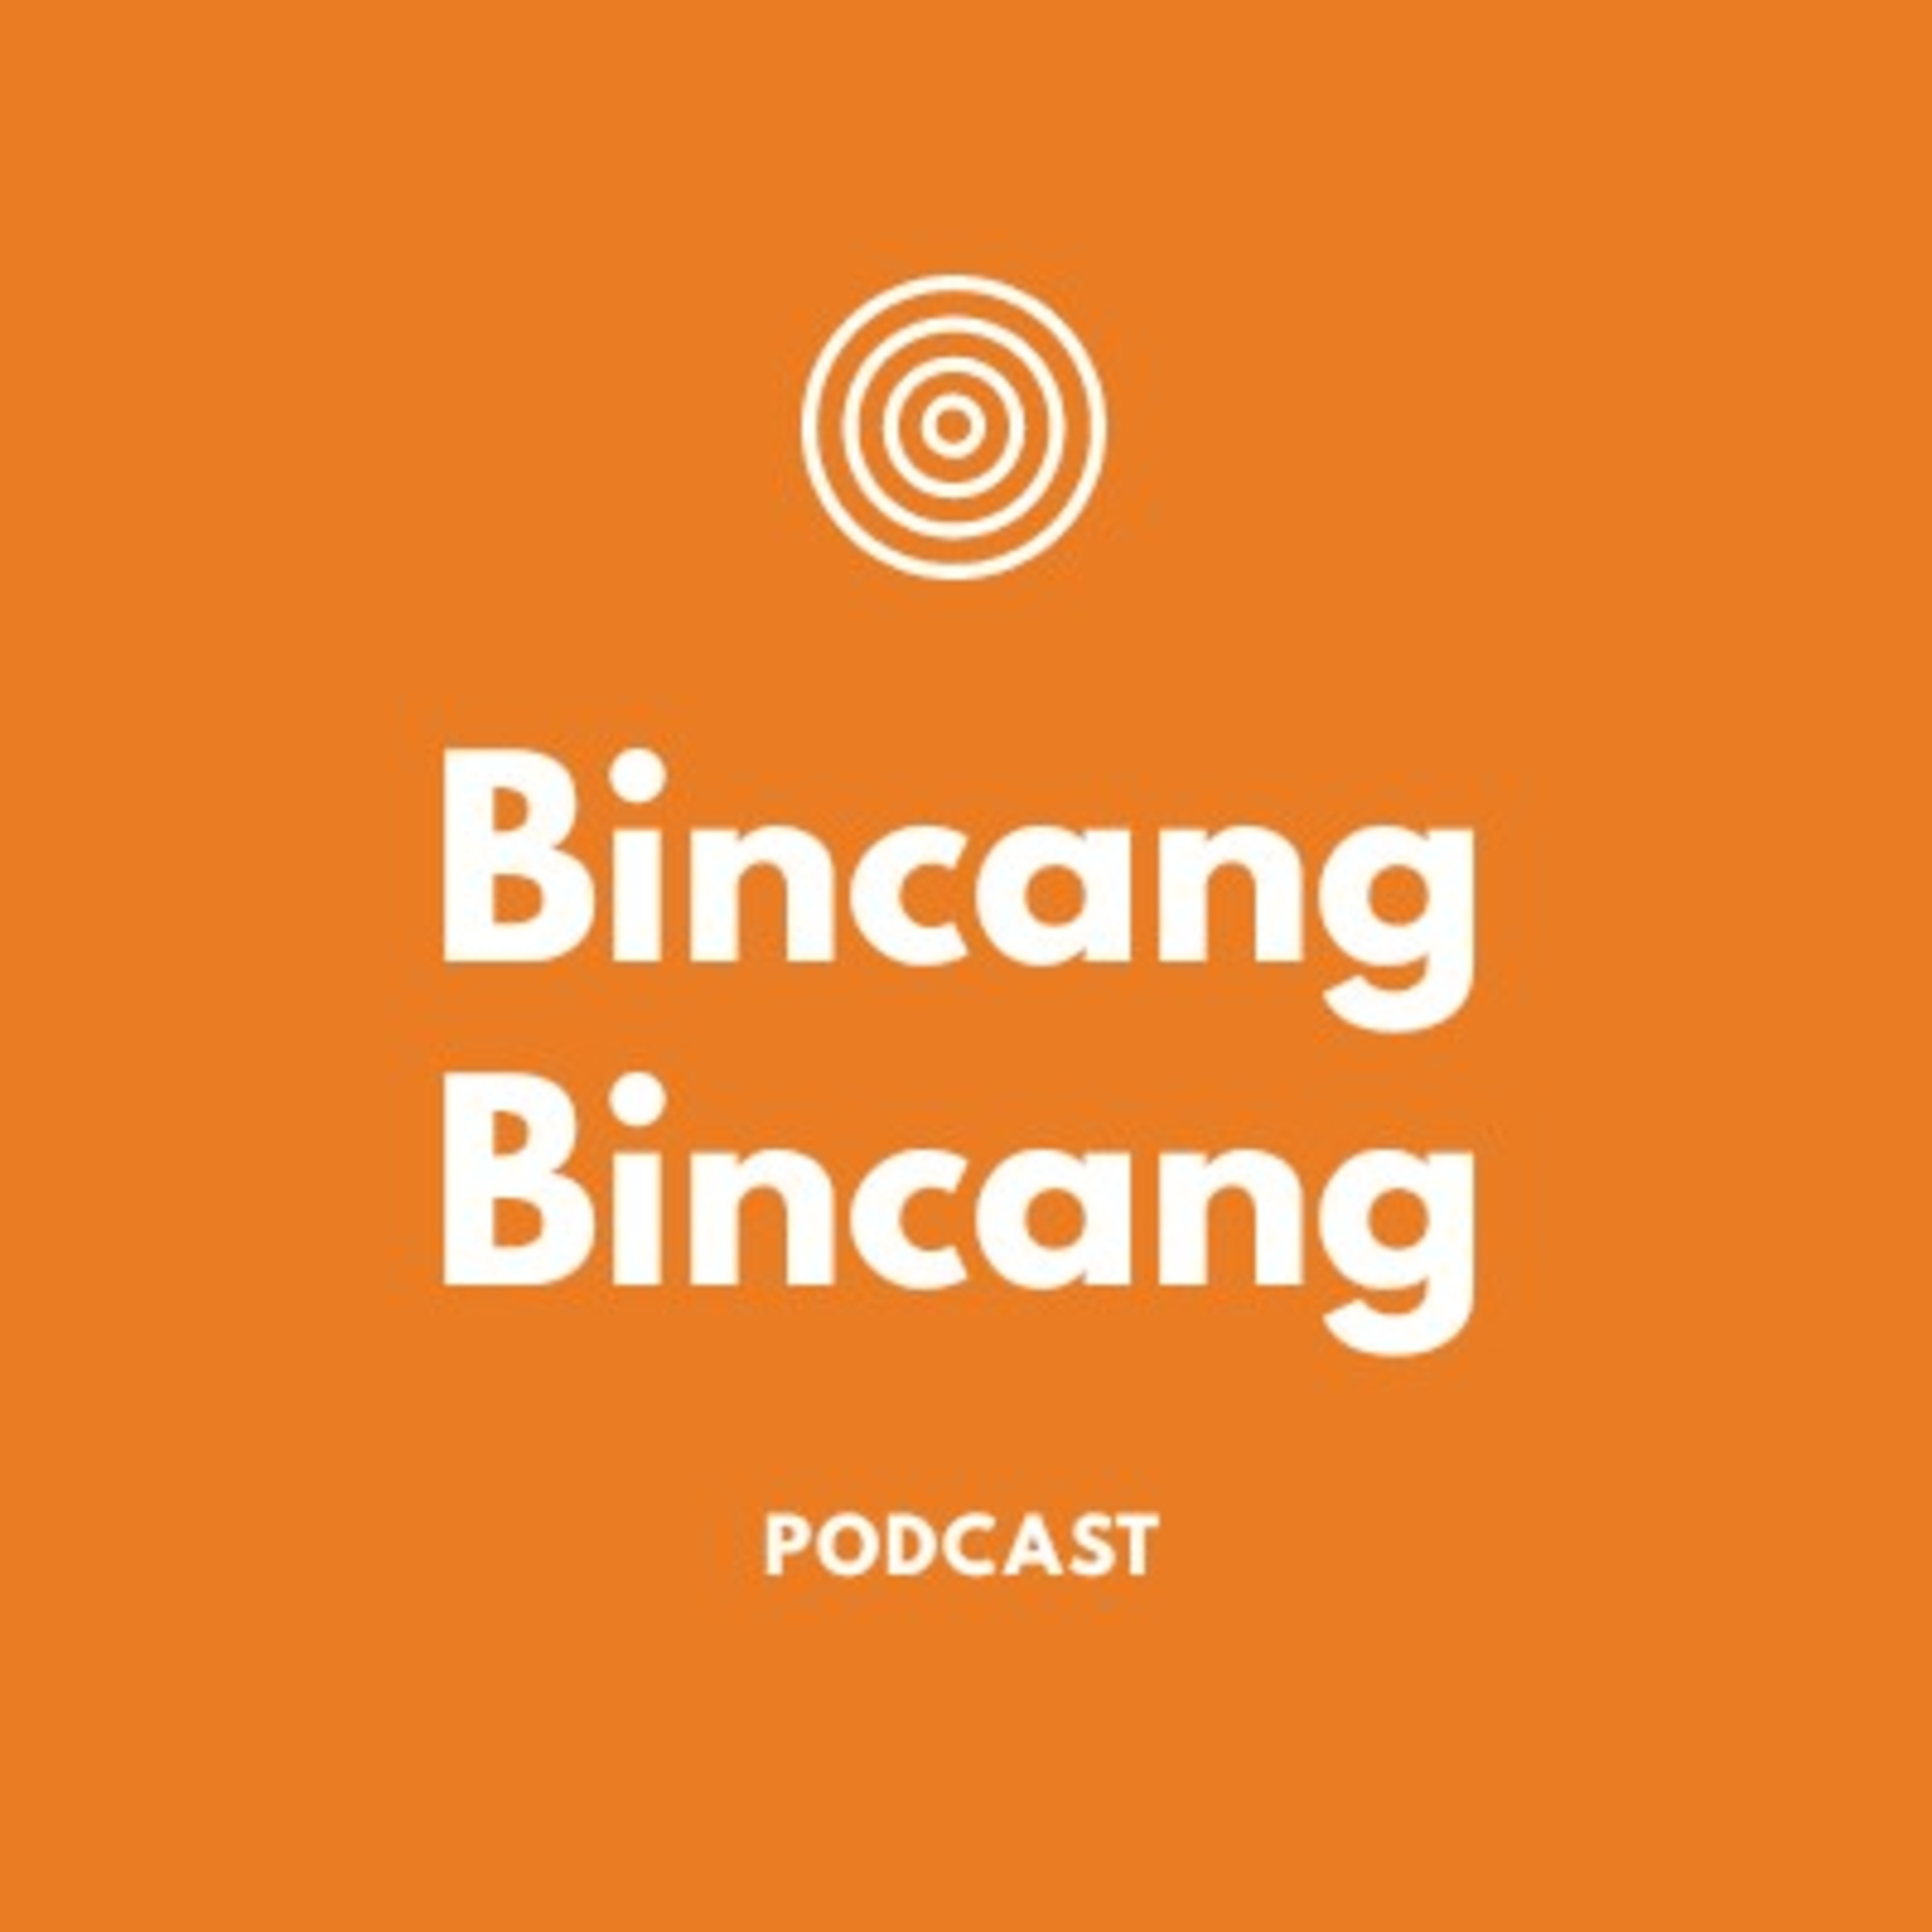 Introduce my first podcast